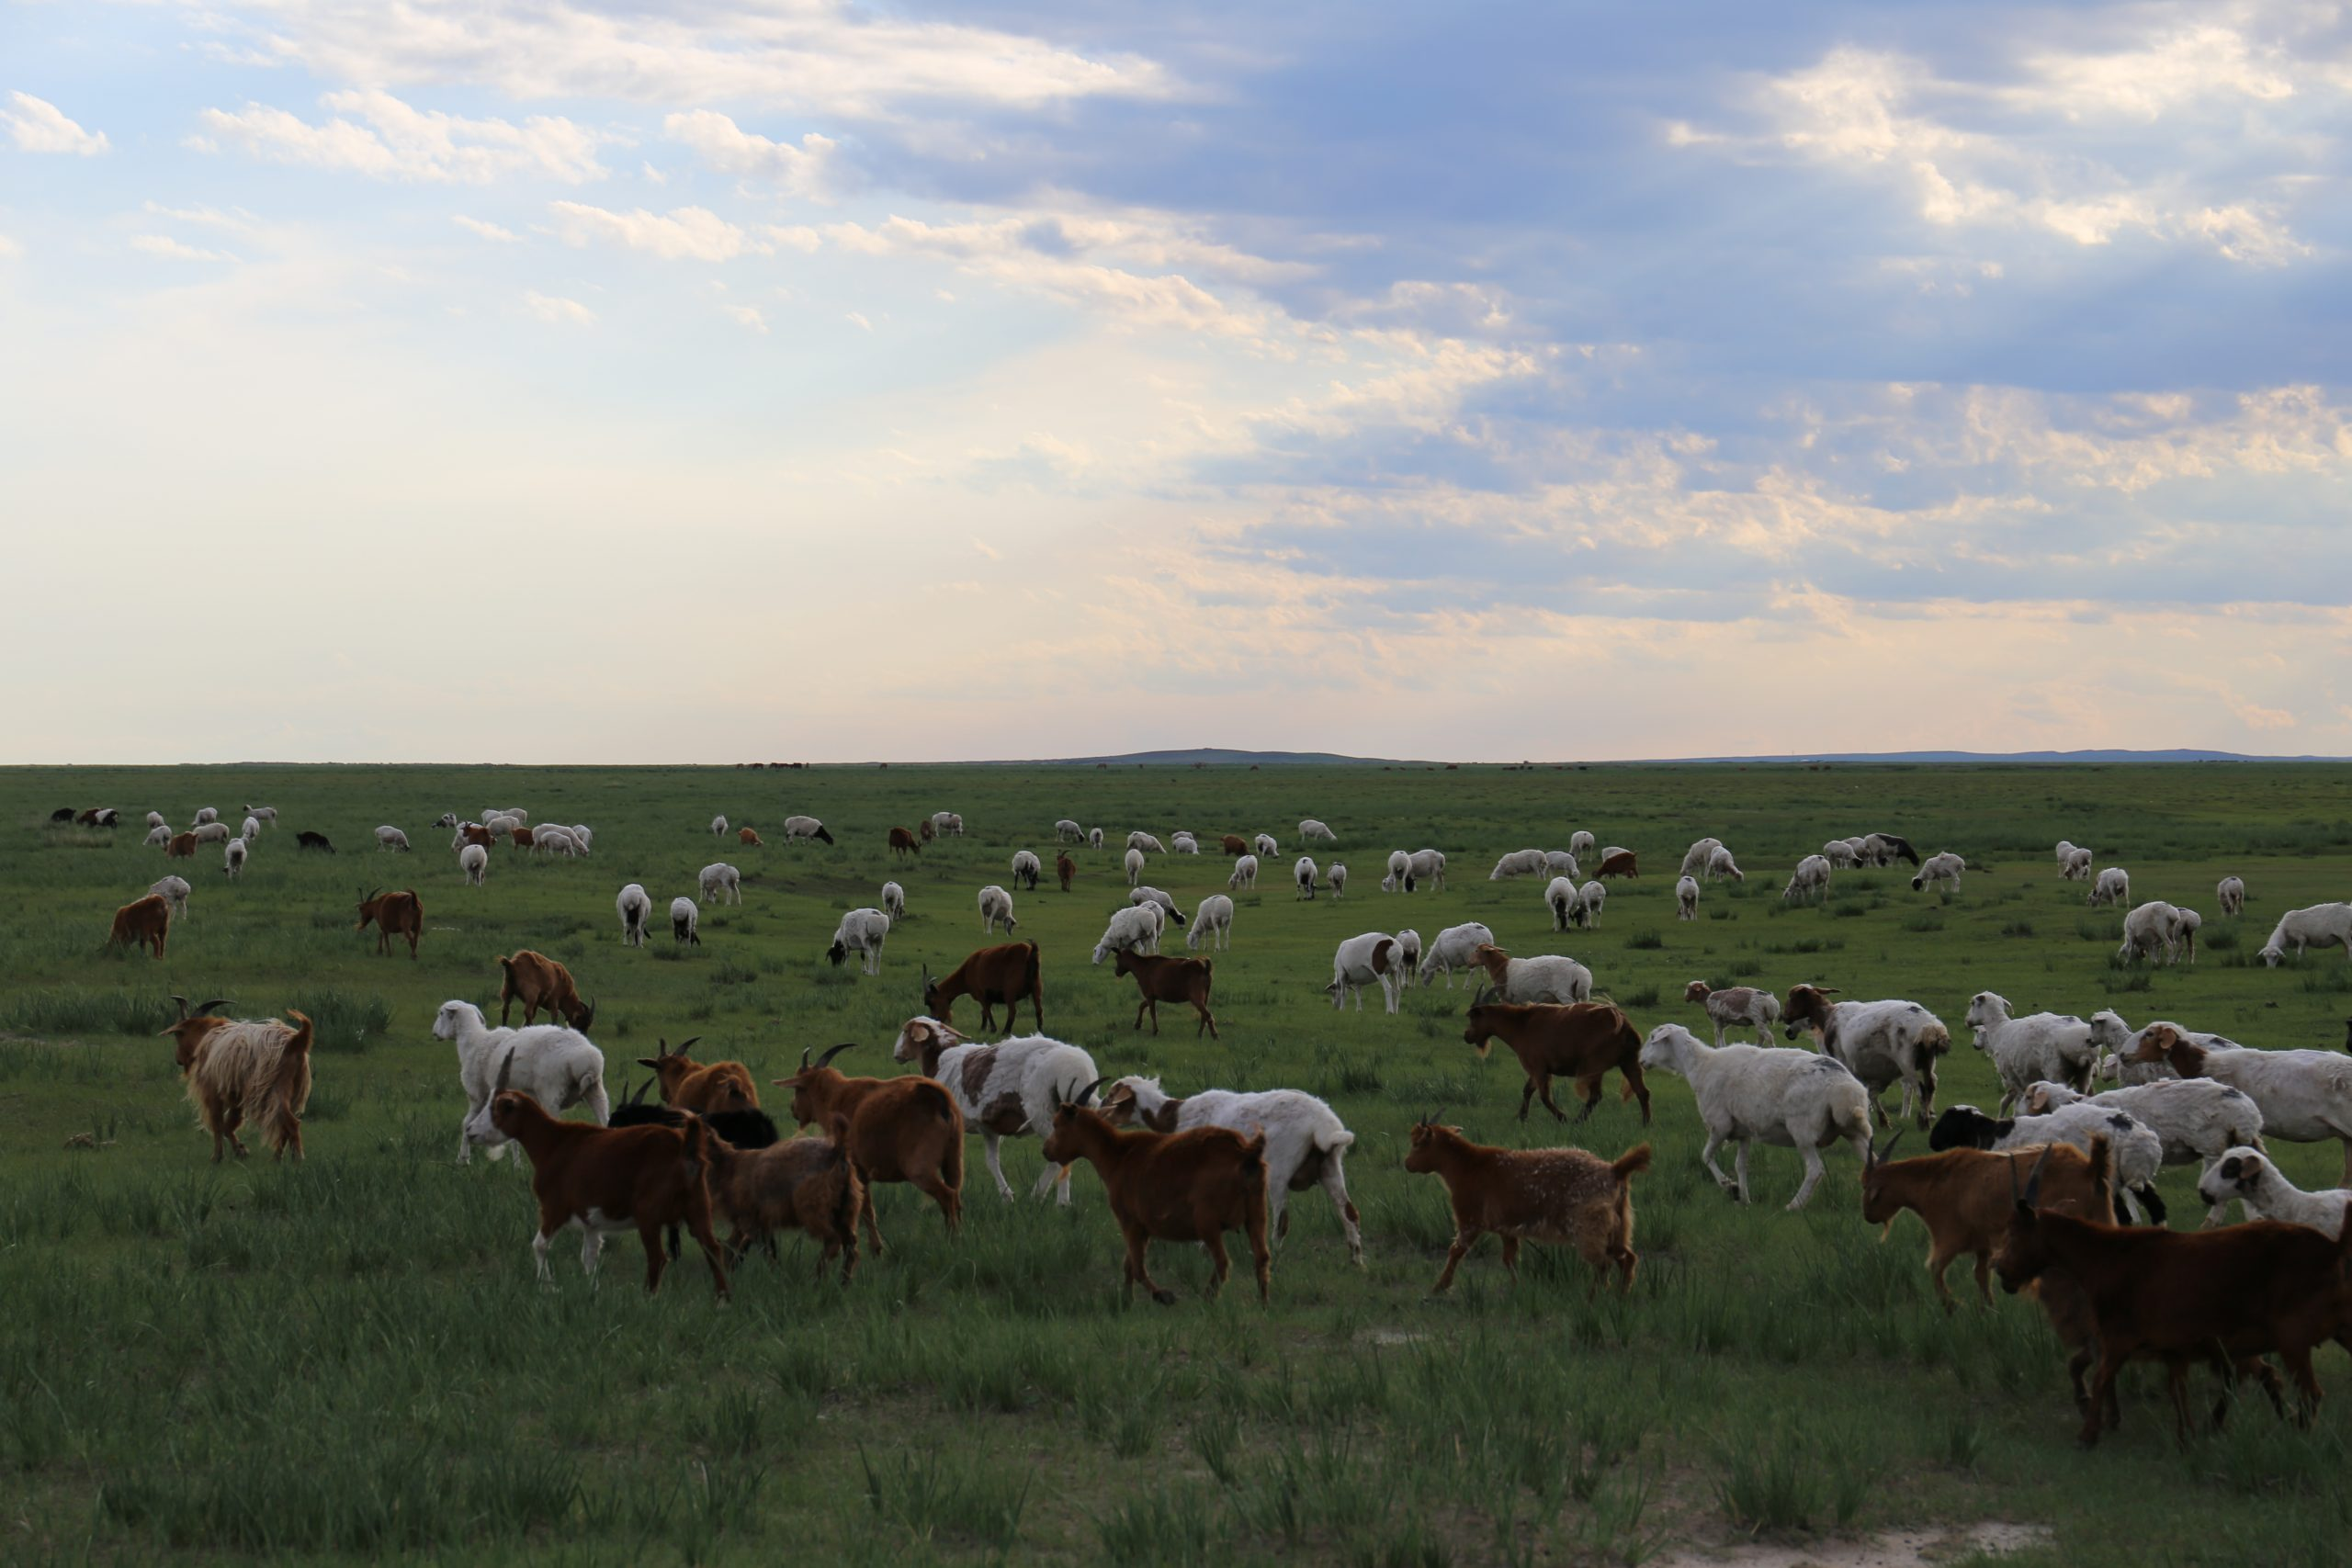 Nomadic lifestyle evolves around their livestock